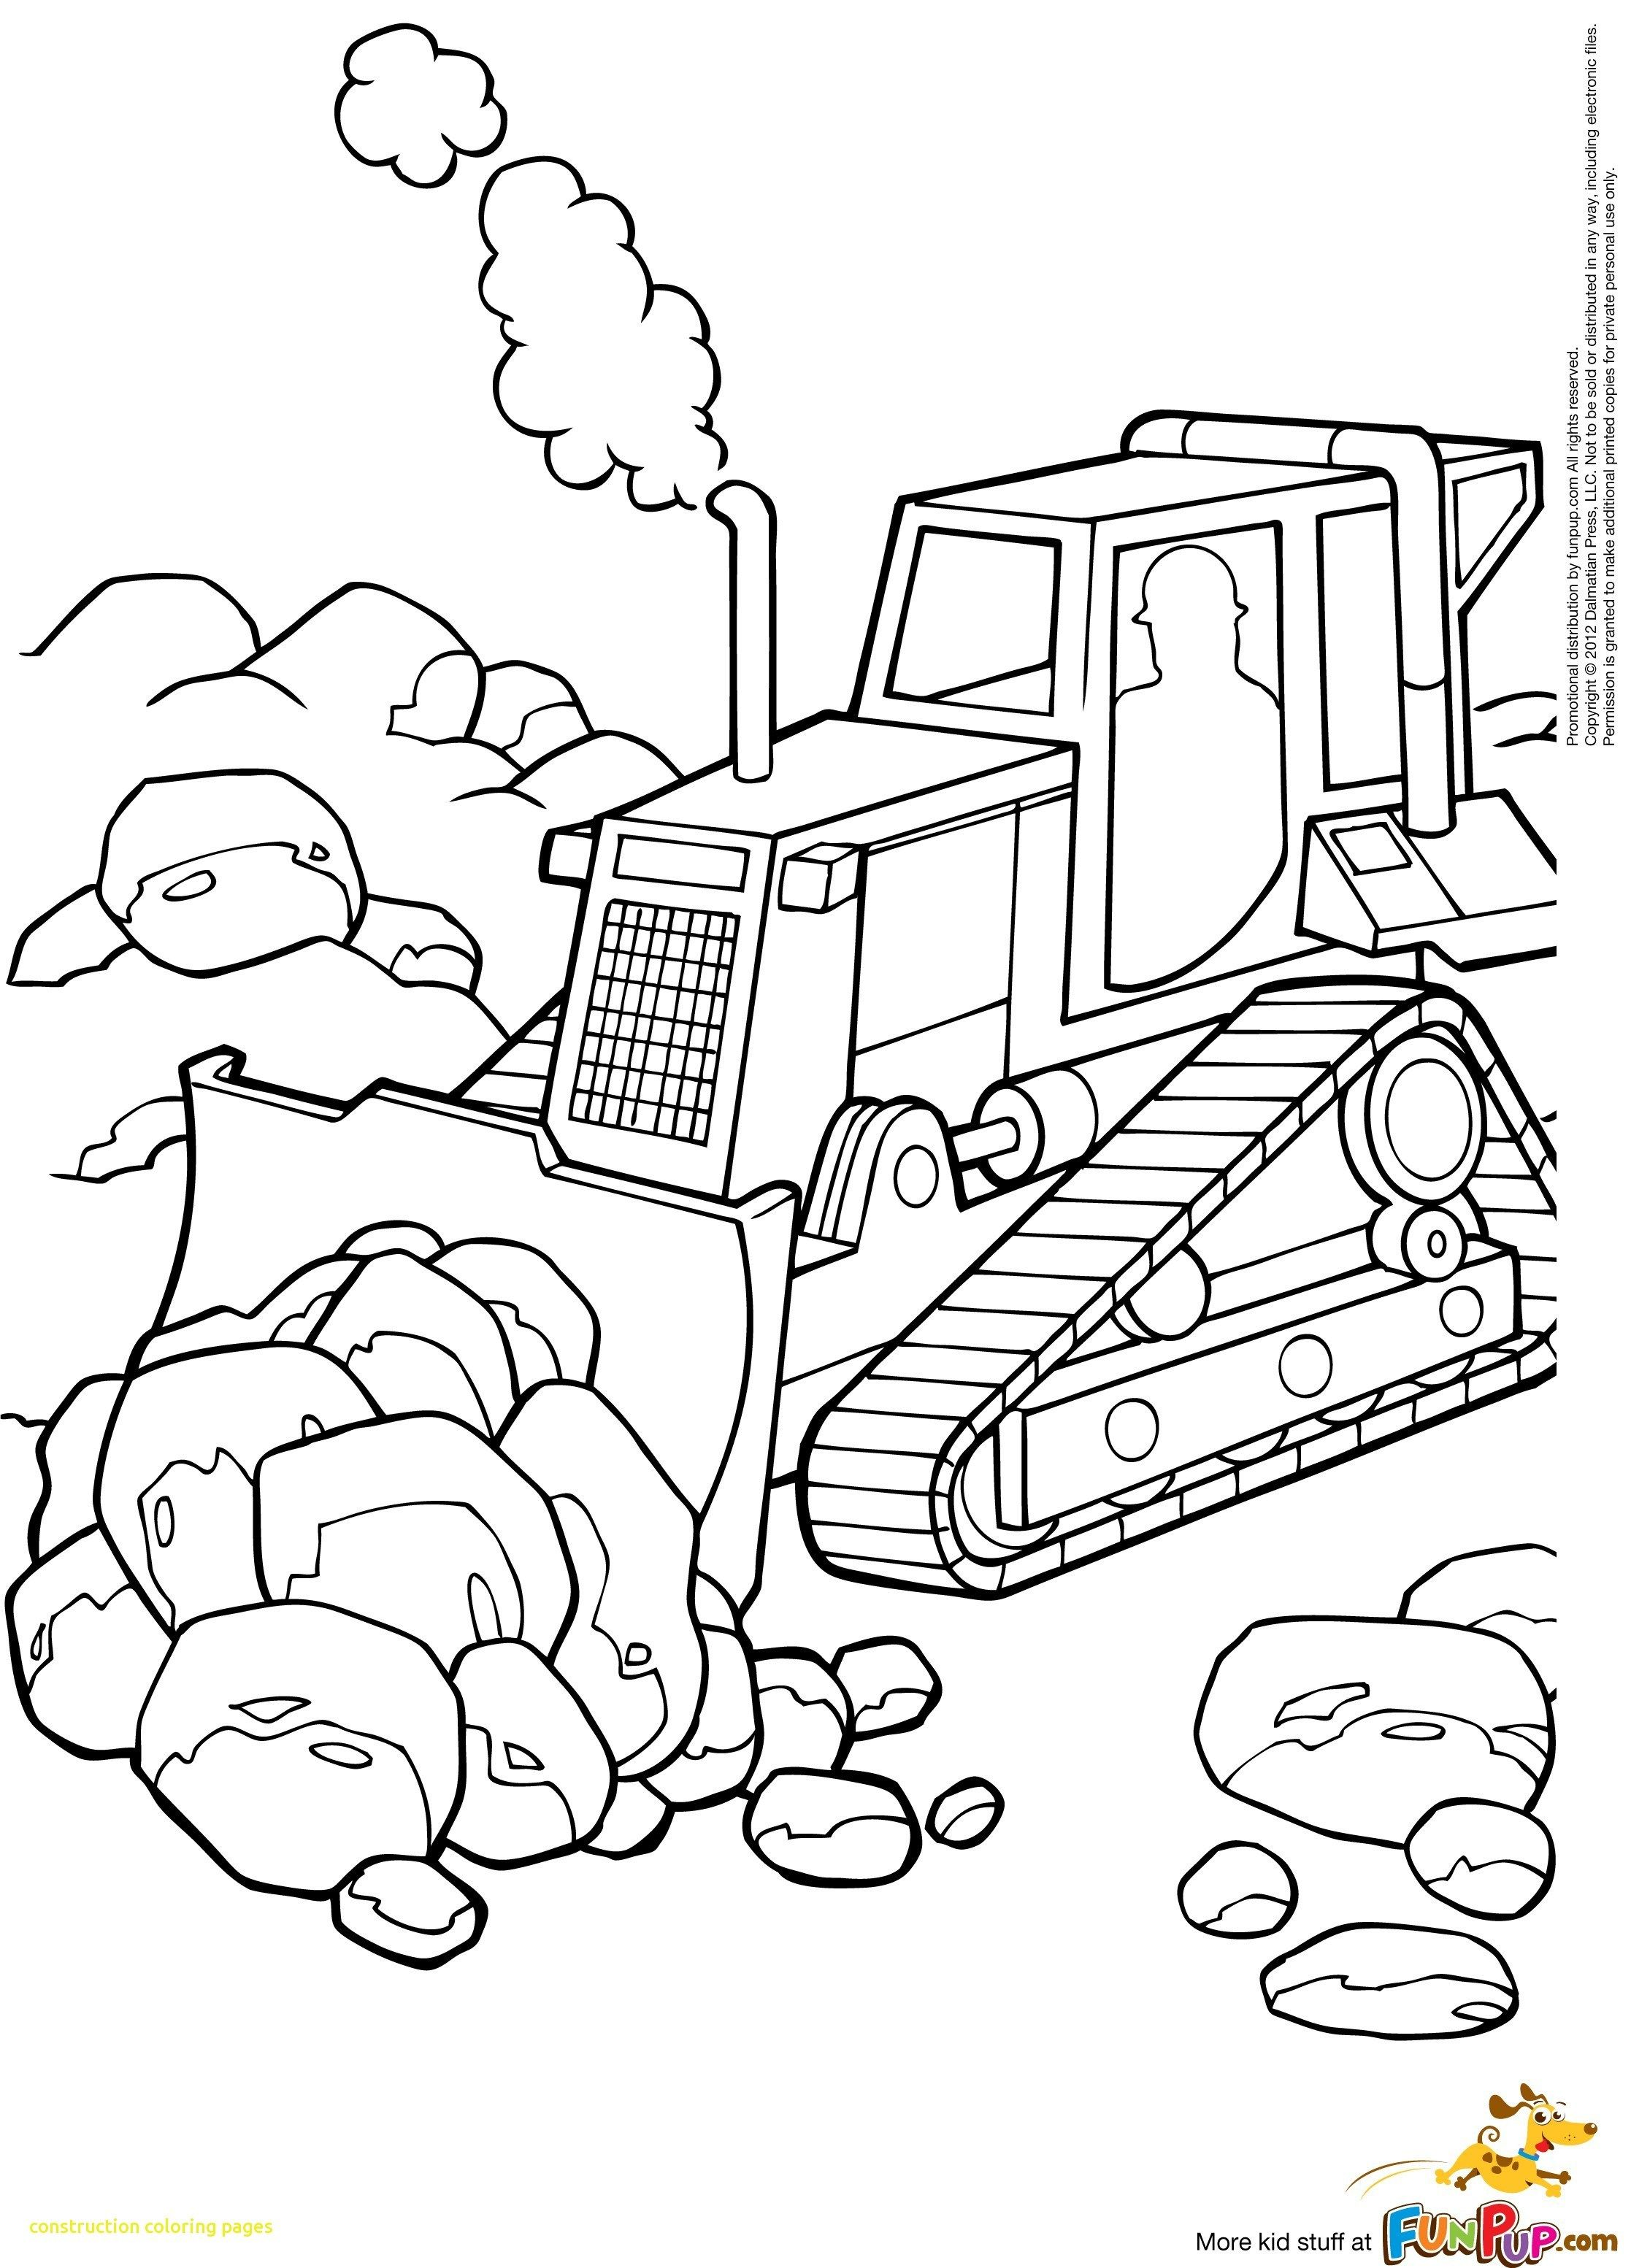 Wonderful Image Of Orca Coloring Pages Davemelillo Com Truck Coloring Pages Ninjago Coloring Pages Tractor Coloring Pages